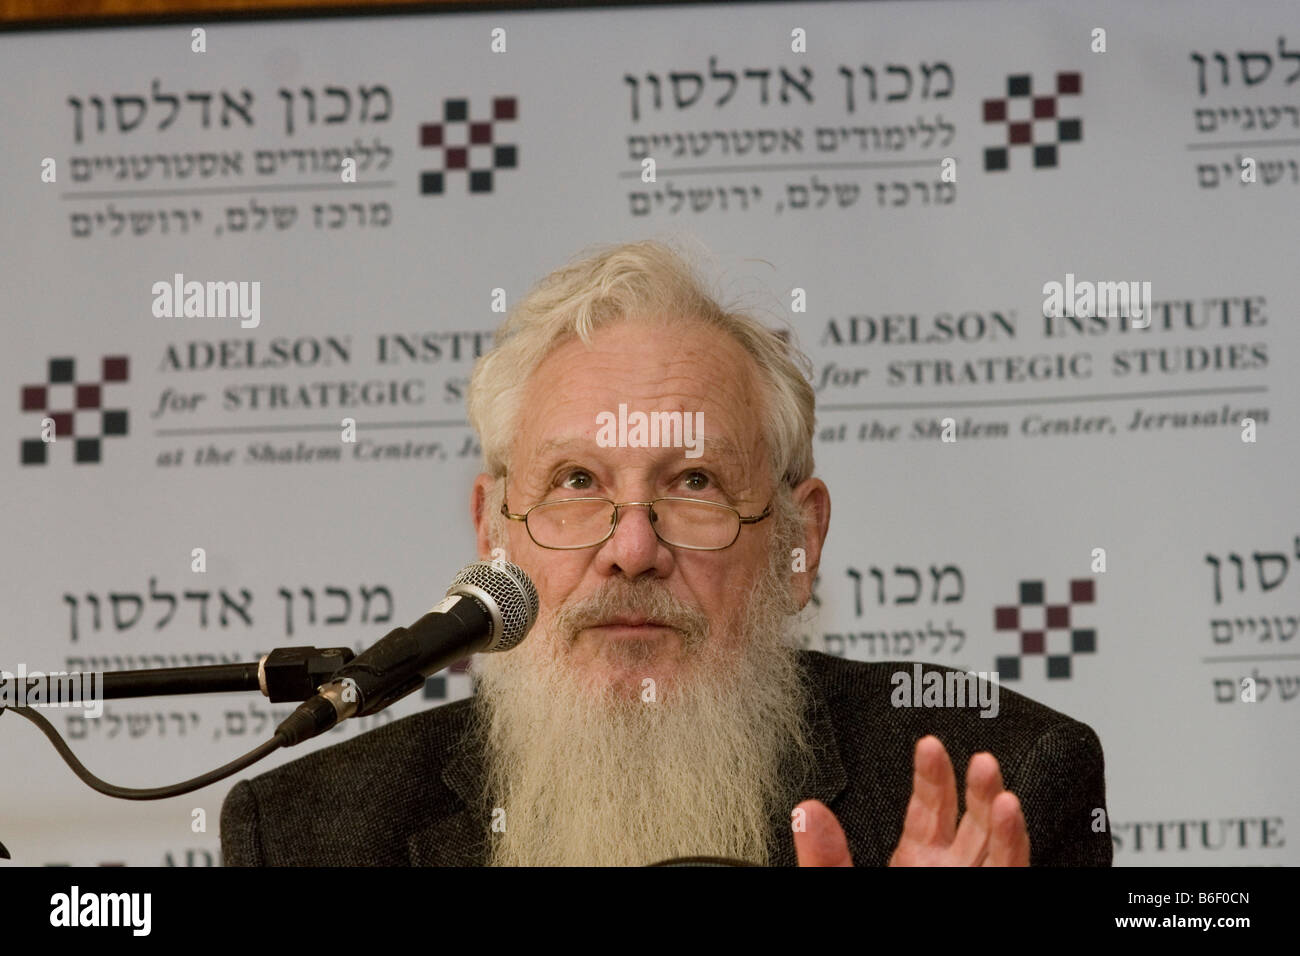 Prof. Robert Aumann, Noble prize winner speaks at the Adelson Institute's Dec. 2008 Counterinsurgency conference. Stock Photo